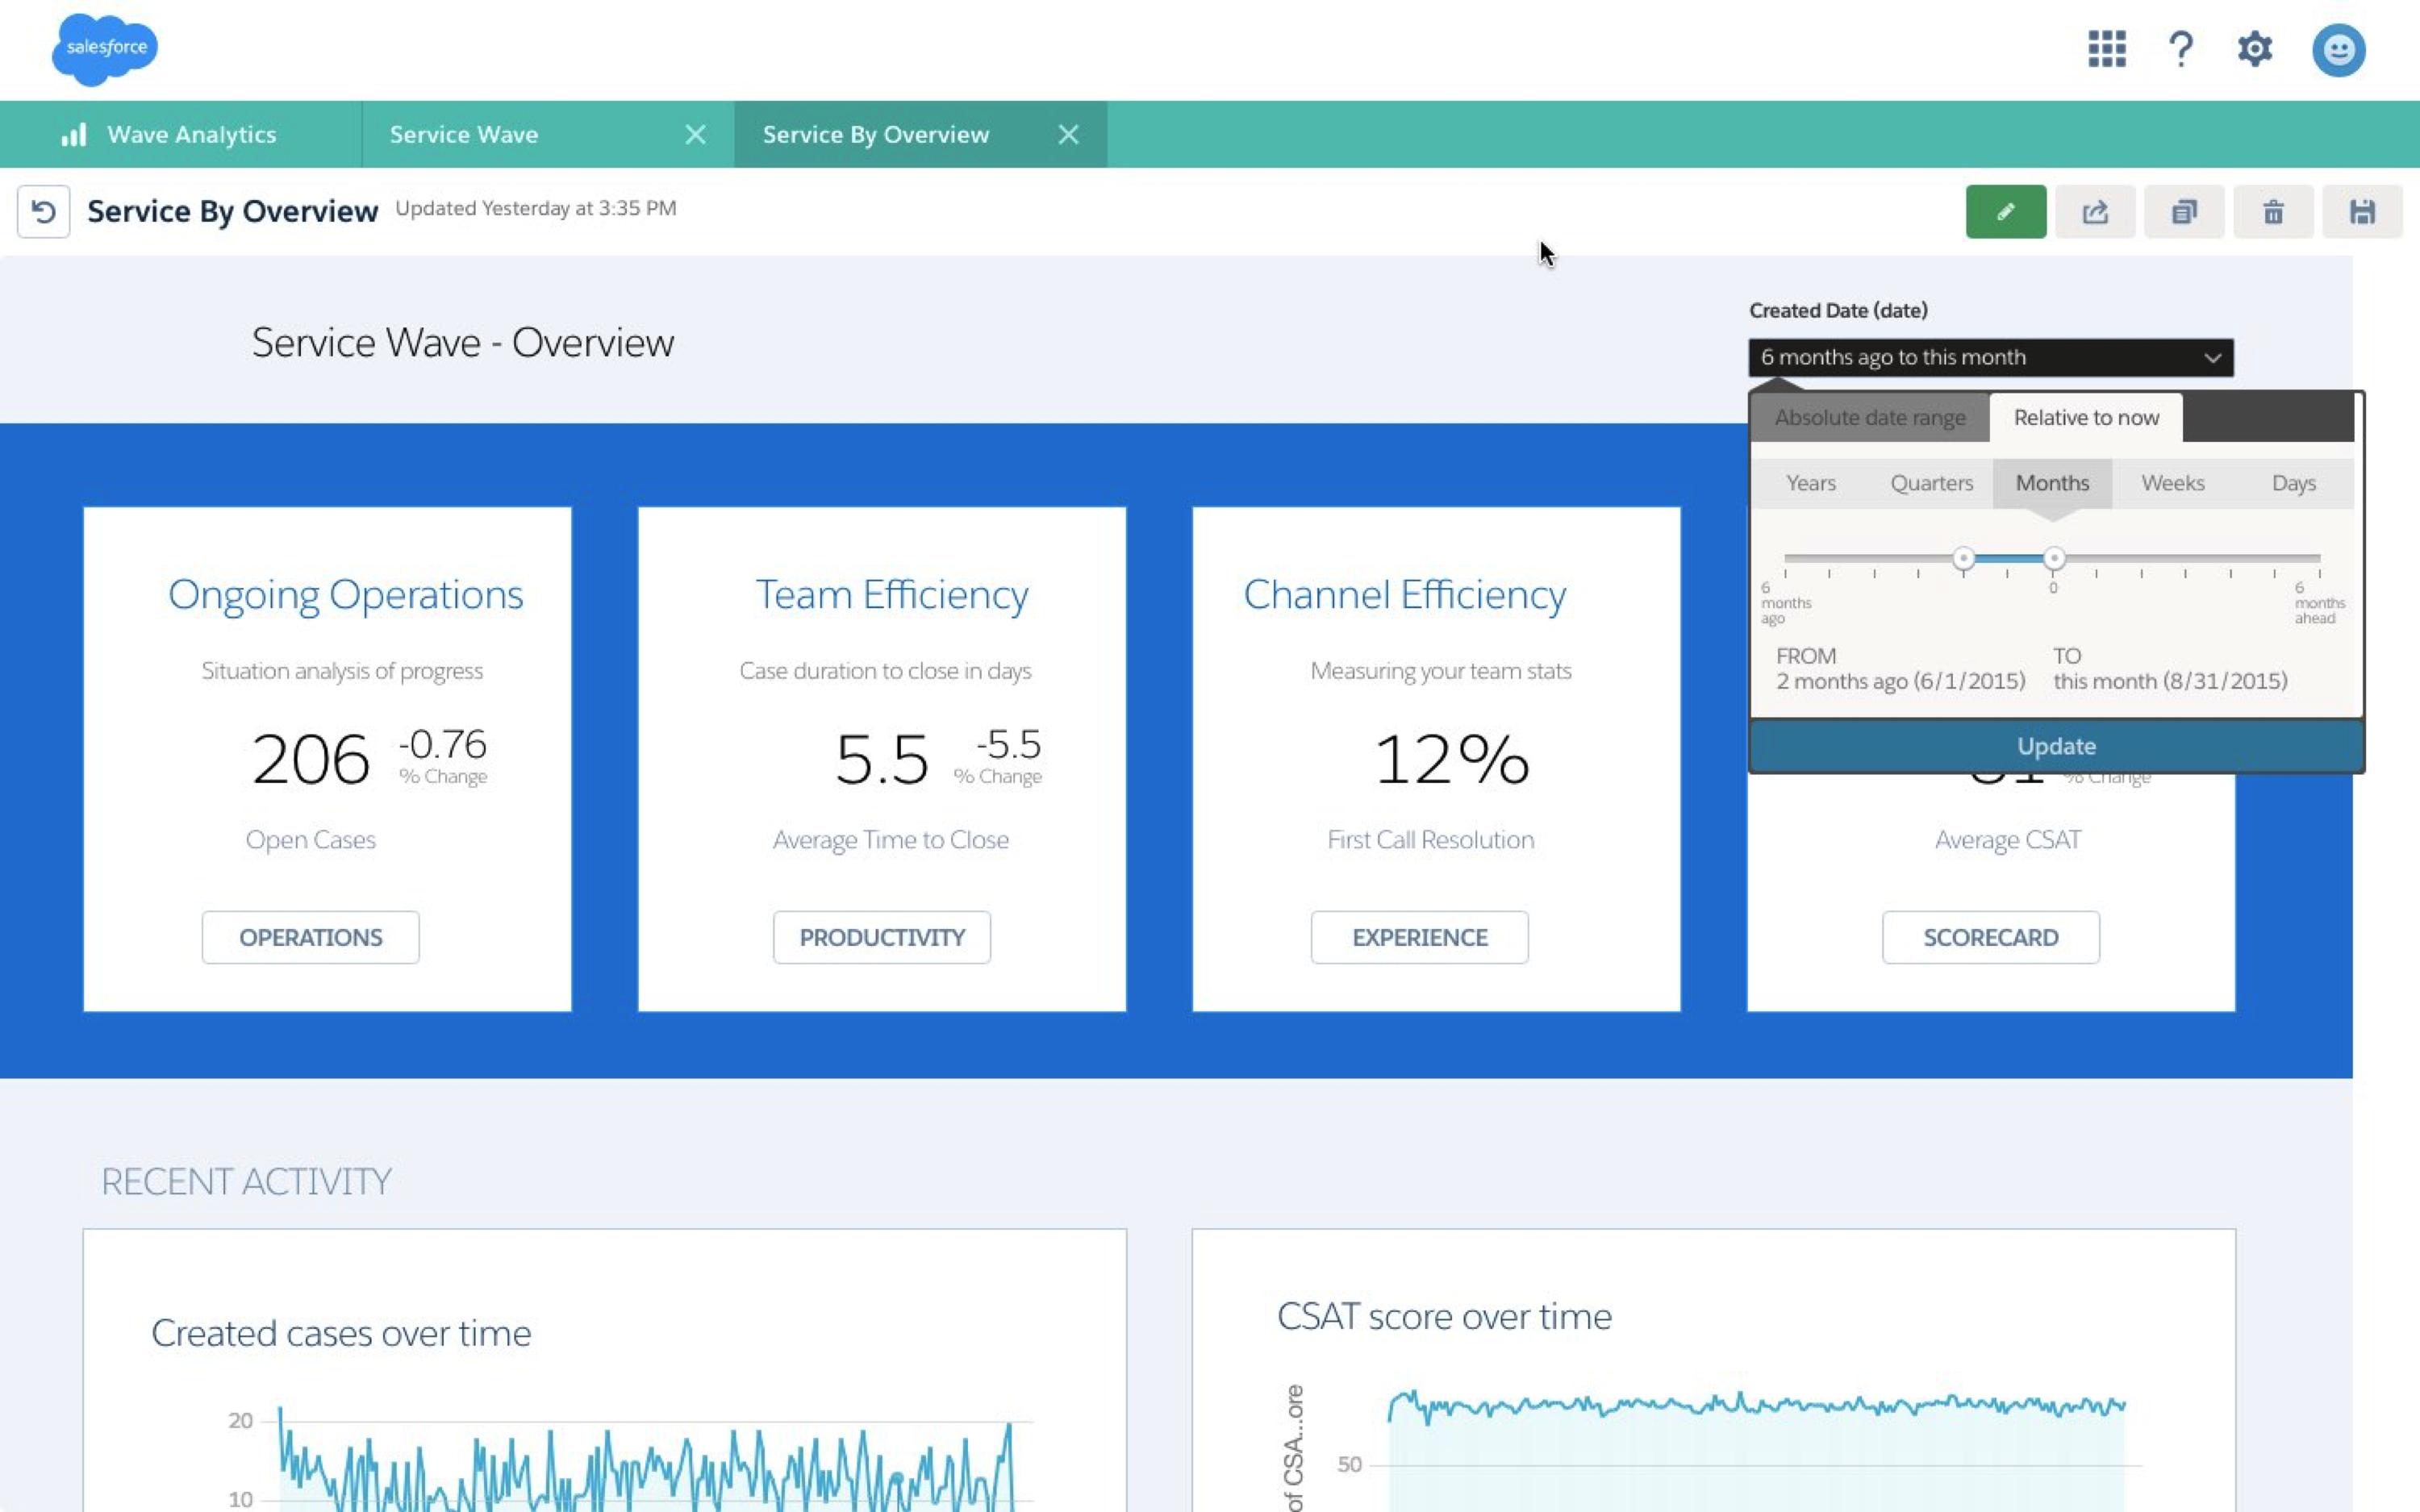 Introducing a New Wave of Customer Service: Service Wave Analytics